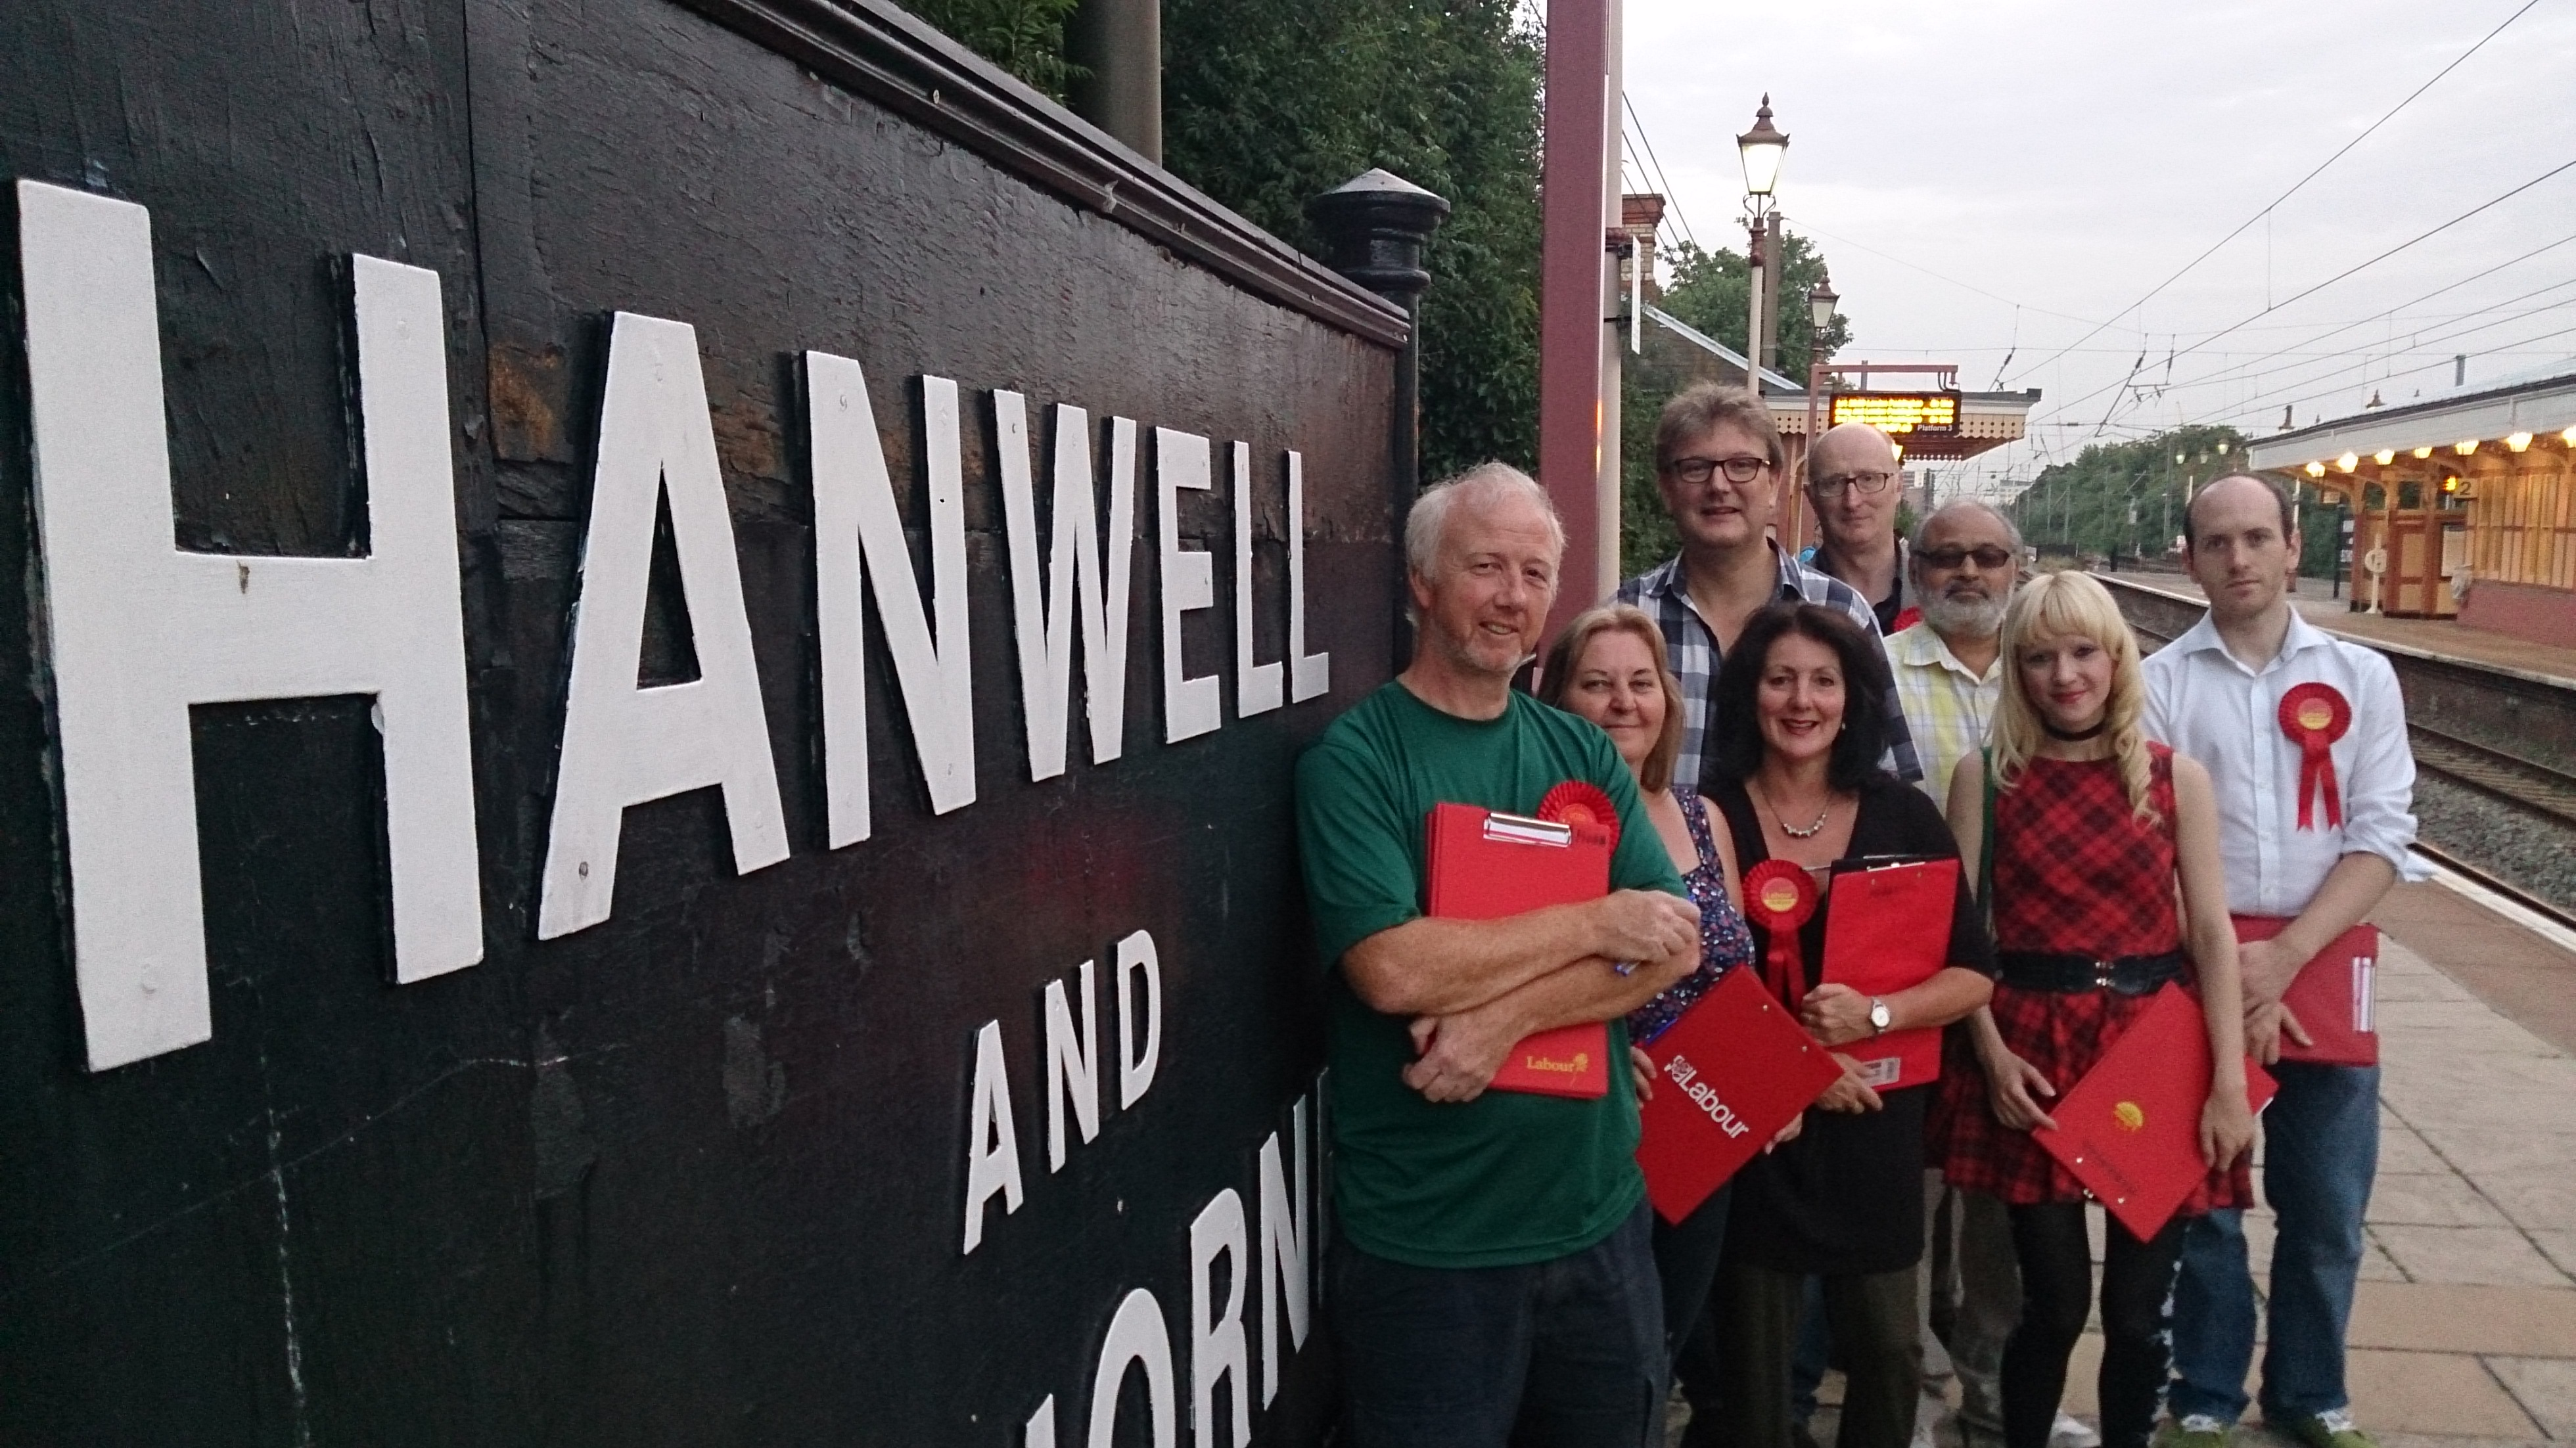 Hanwell_Campaigning_Station.jpg